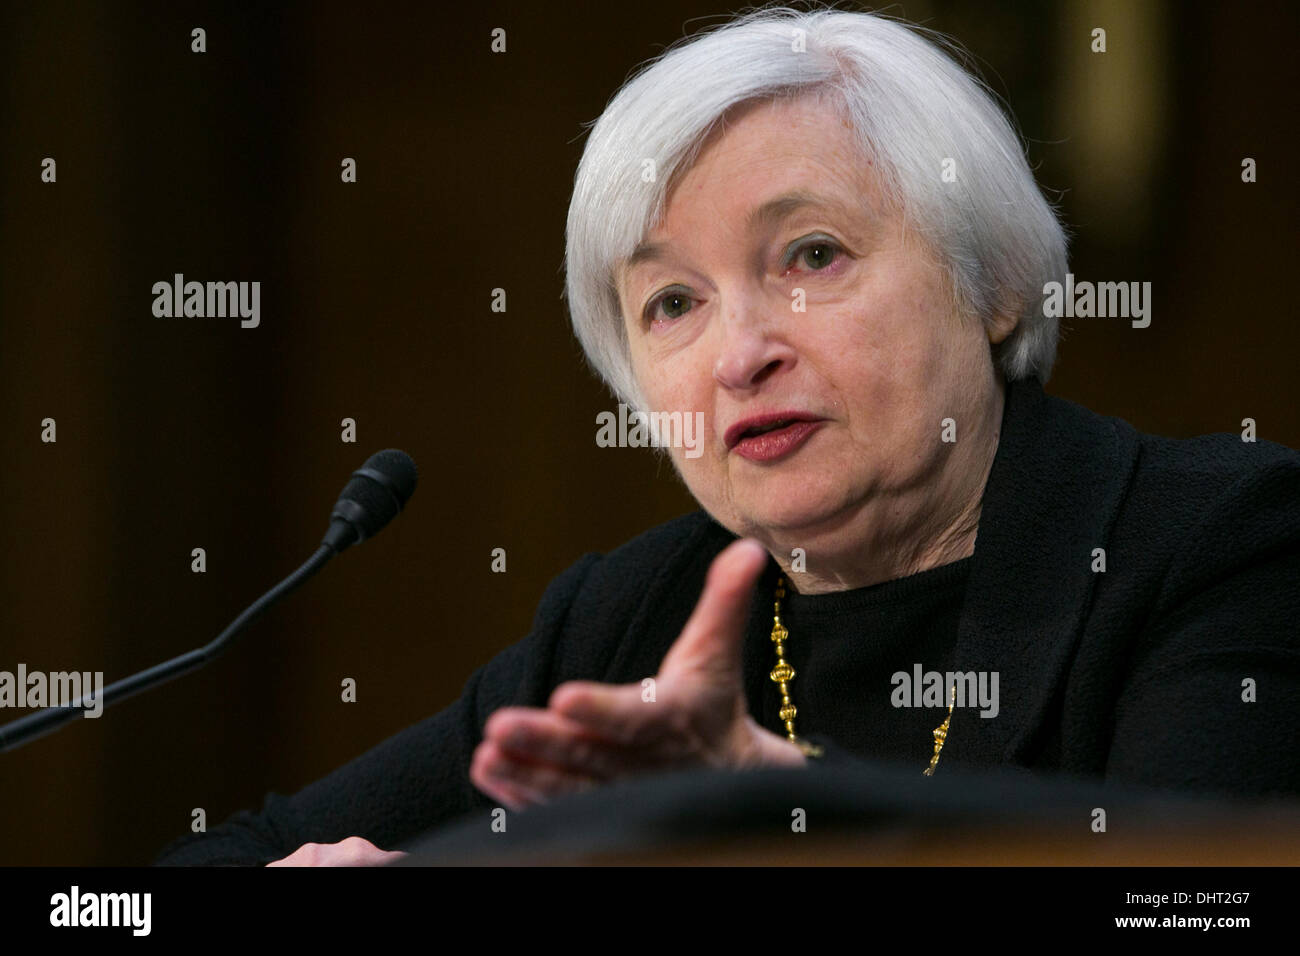 Washington DC, USA. 14th November 2013. Janet Yellen testifies before the Senate Banking Committee during a hearing on her nomination to become Chair of the Federal Reserve Bank on November 14, 2013 in Washington, DC Credit:  Kristoffer Tripplaar/Alamy Live News - Stock Image